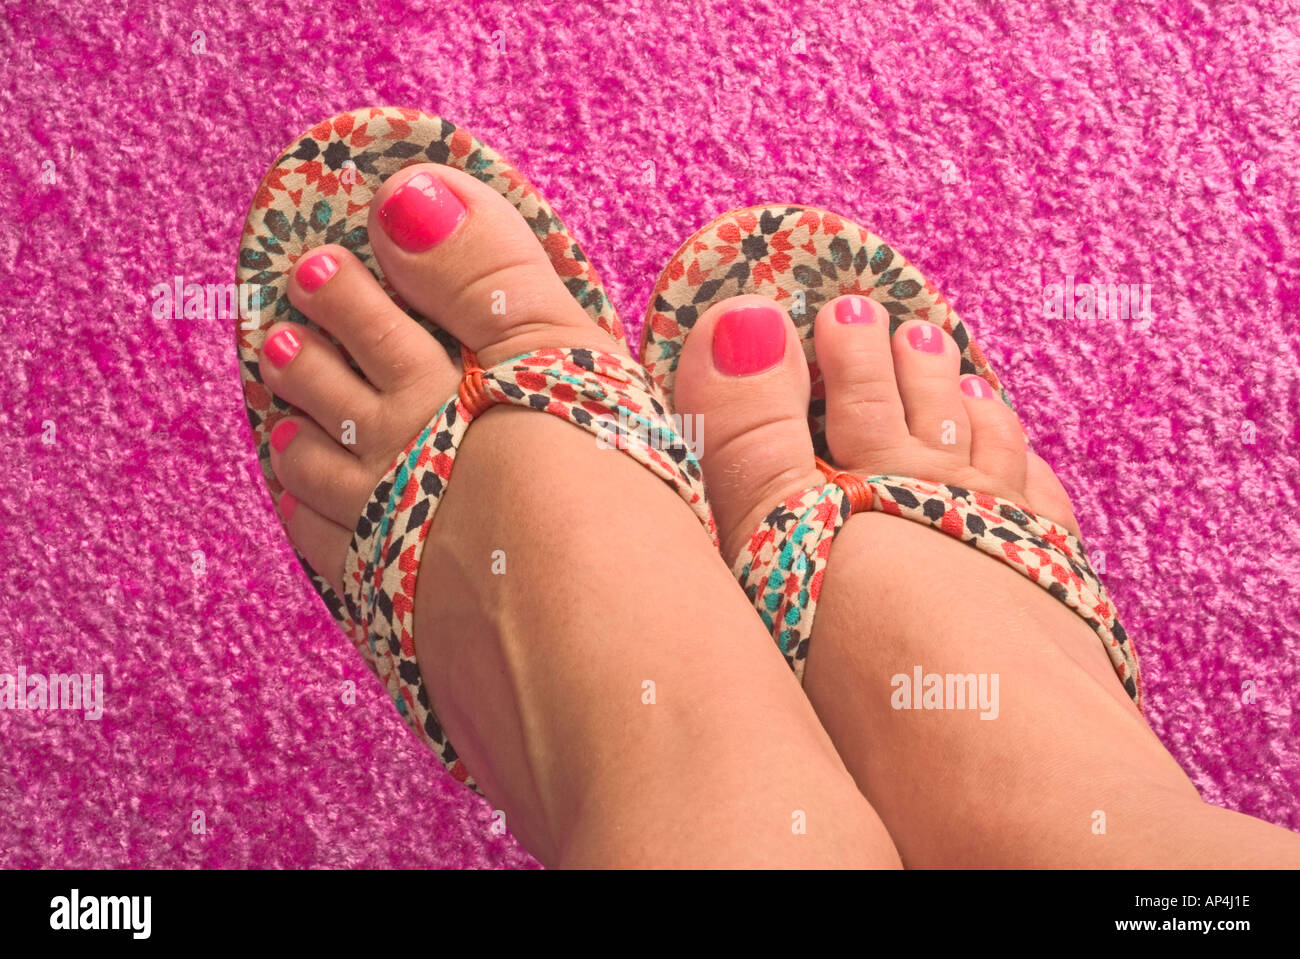 Pink Toe Nails and Fancy Sandals Stock Photo: 5116445 - Alamy